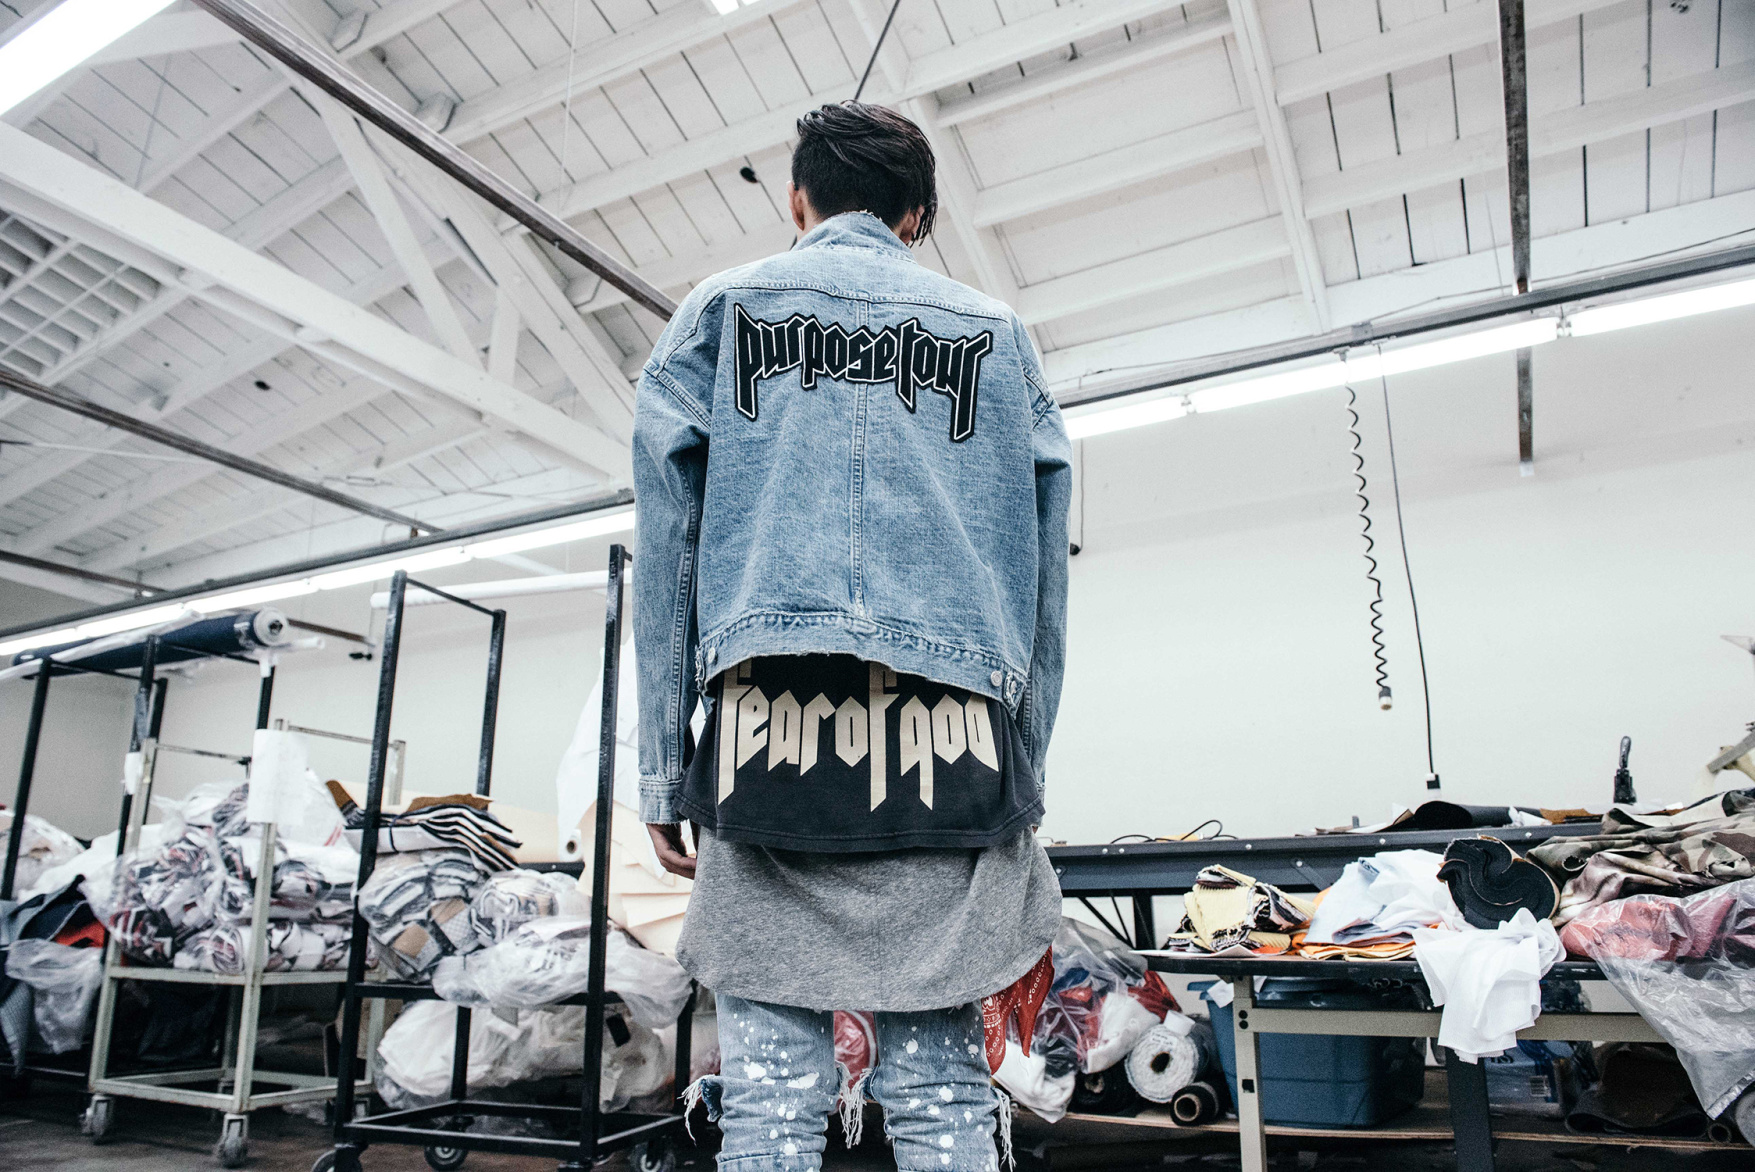 Fear of God x Purpose Tour capsule collection available at Barneys New York on July 16. Photograph © Diane Abapo.